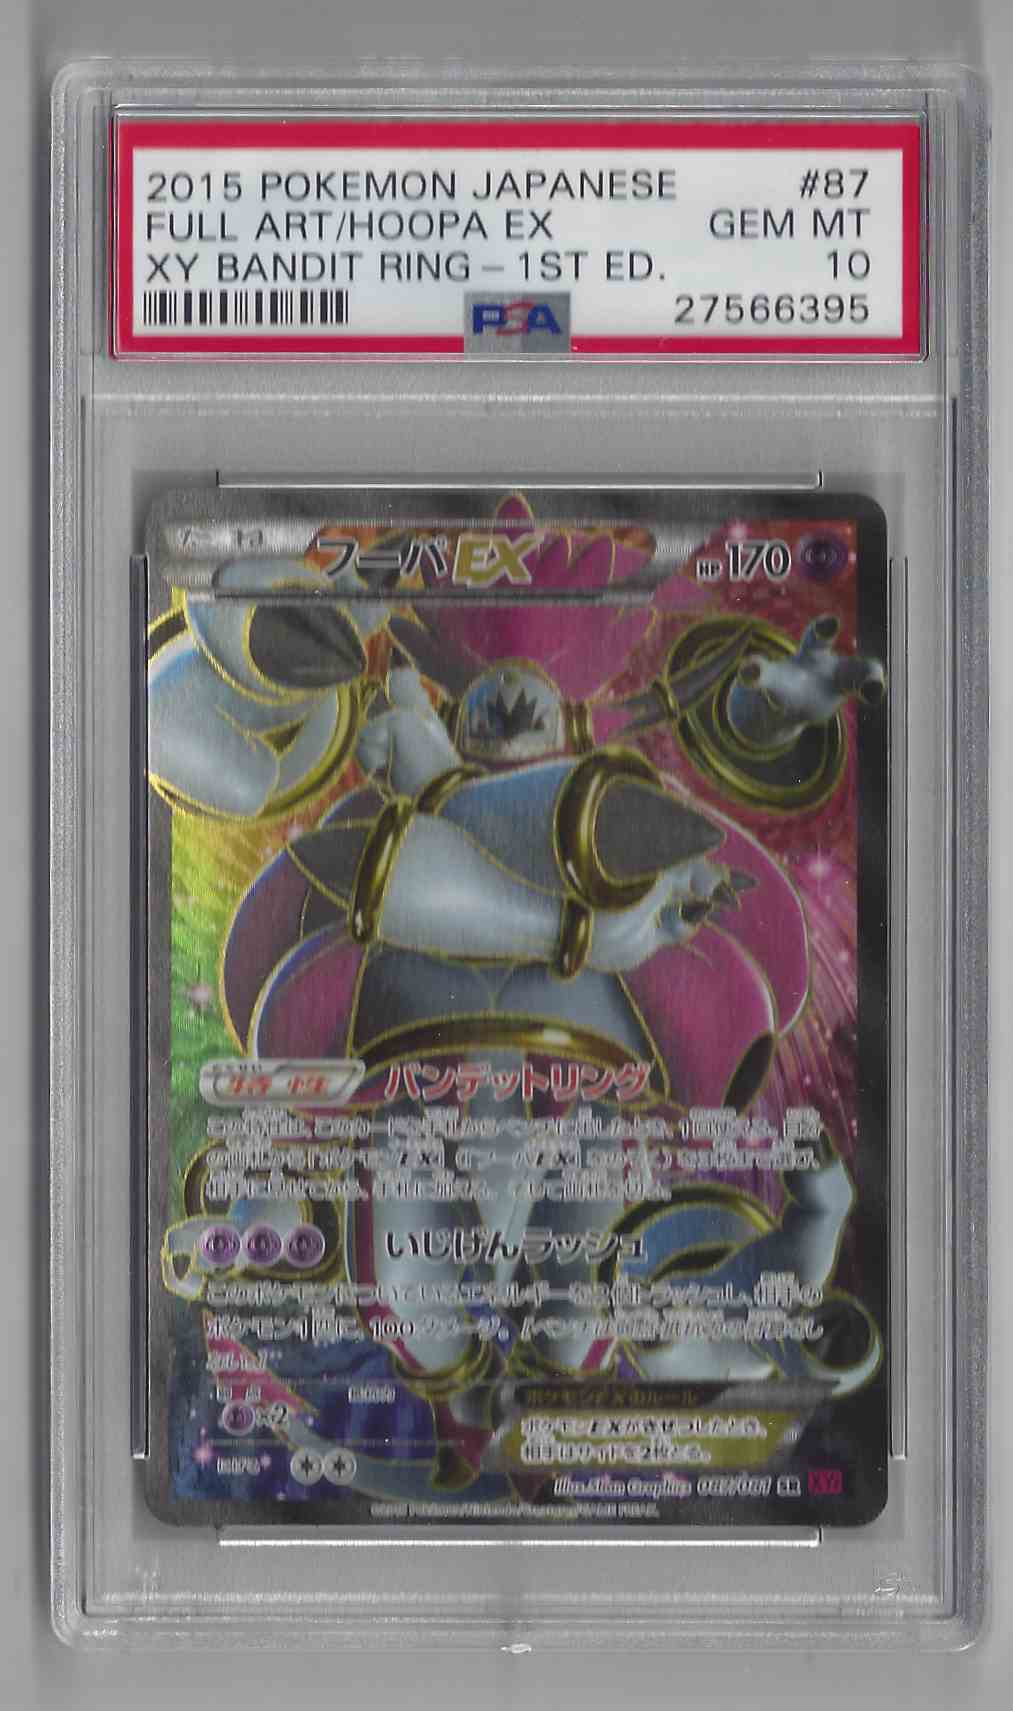 2015 Pokemon Japanese 1st Edition Xy Bandit Ring Hoopa EX #87 card front image